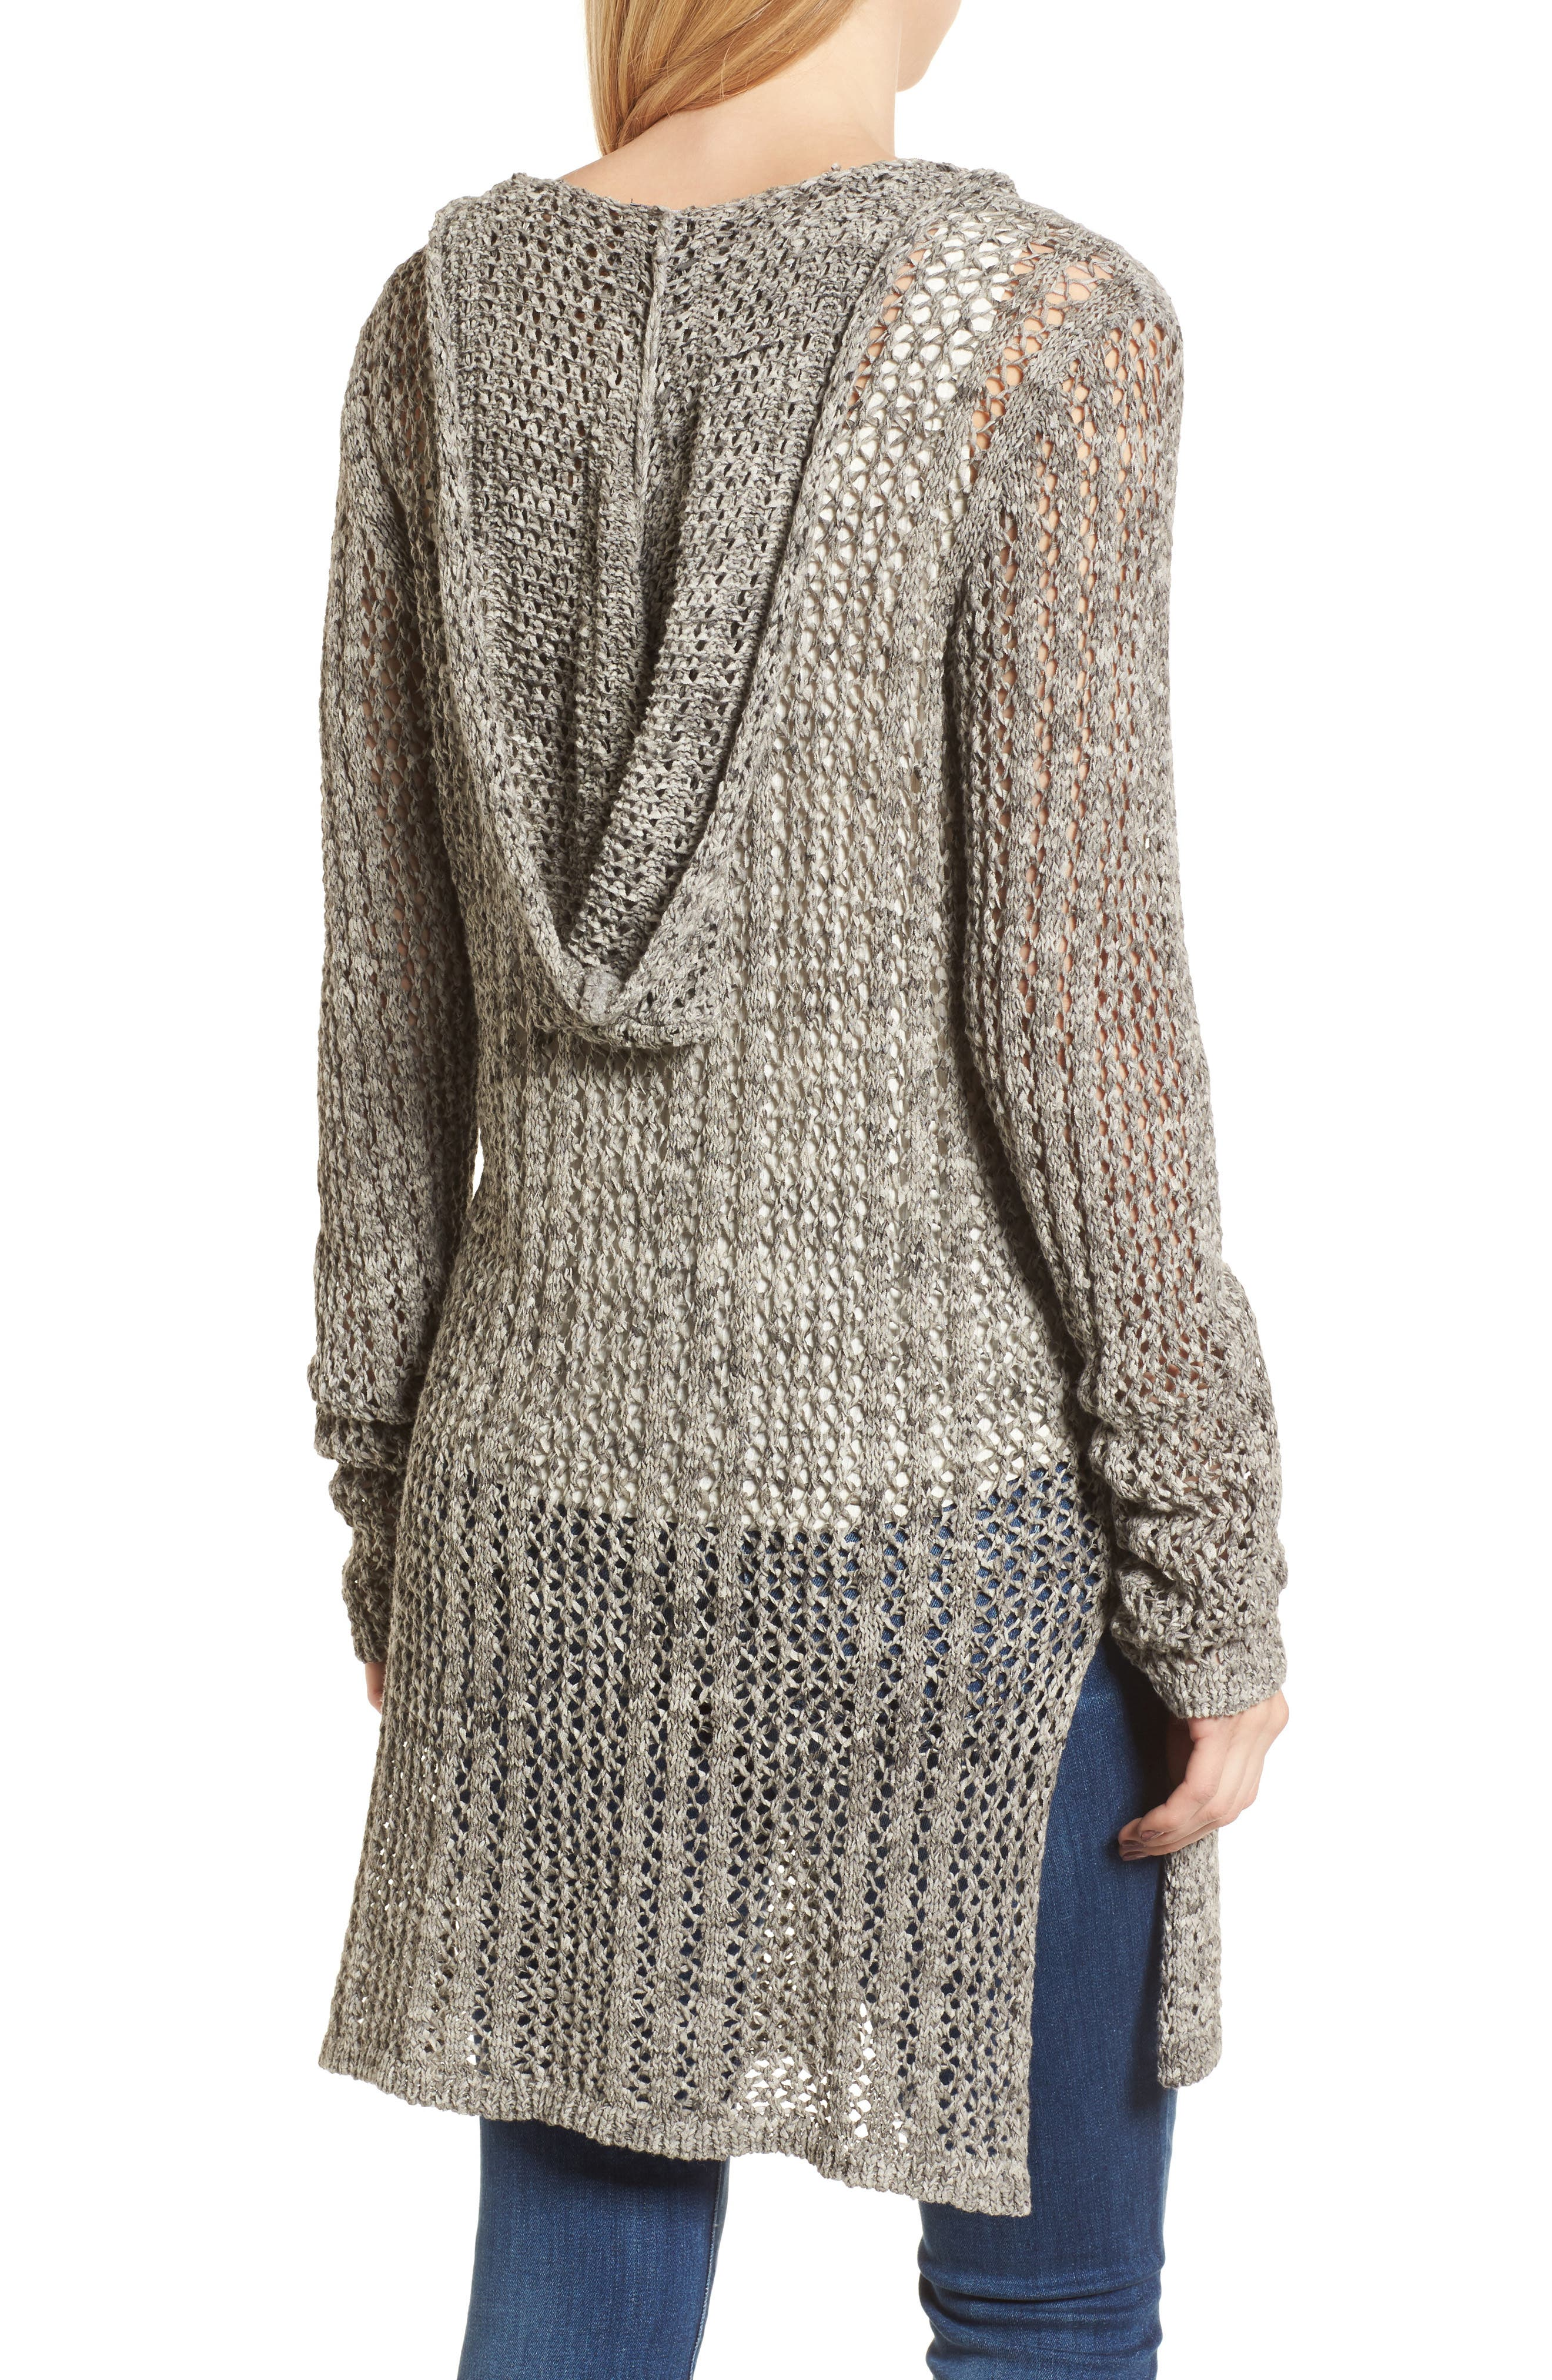 Knox Hooded Cardigan,                             Alternate thumbnail 3, color,